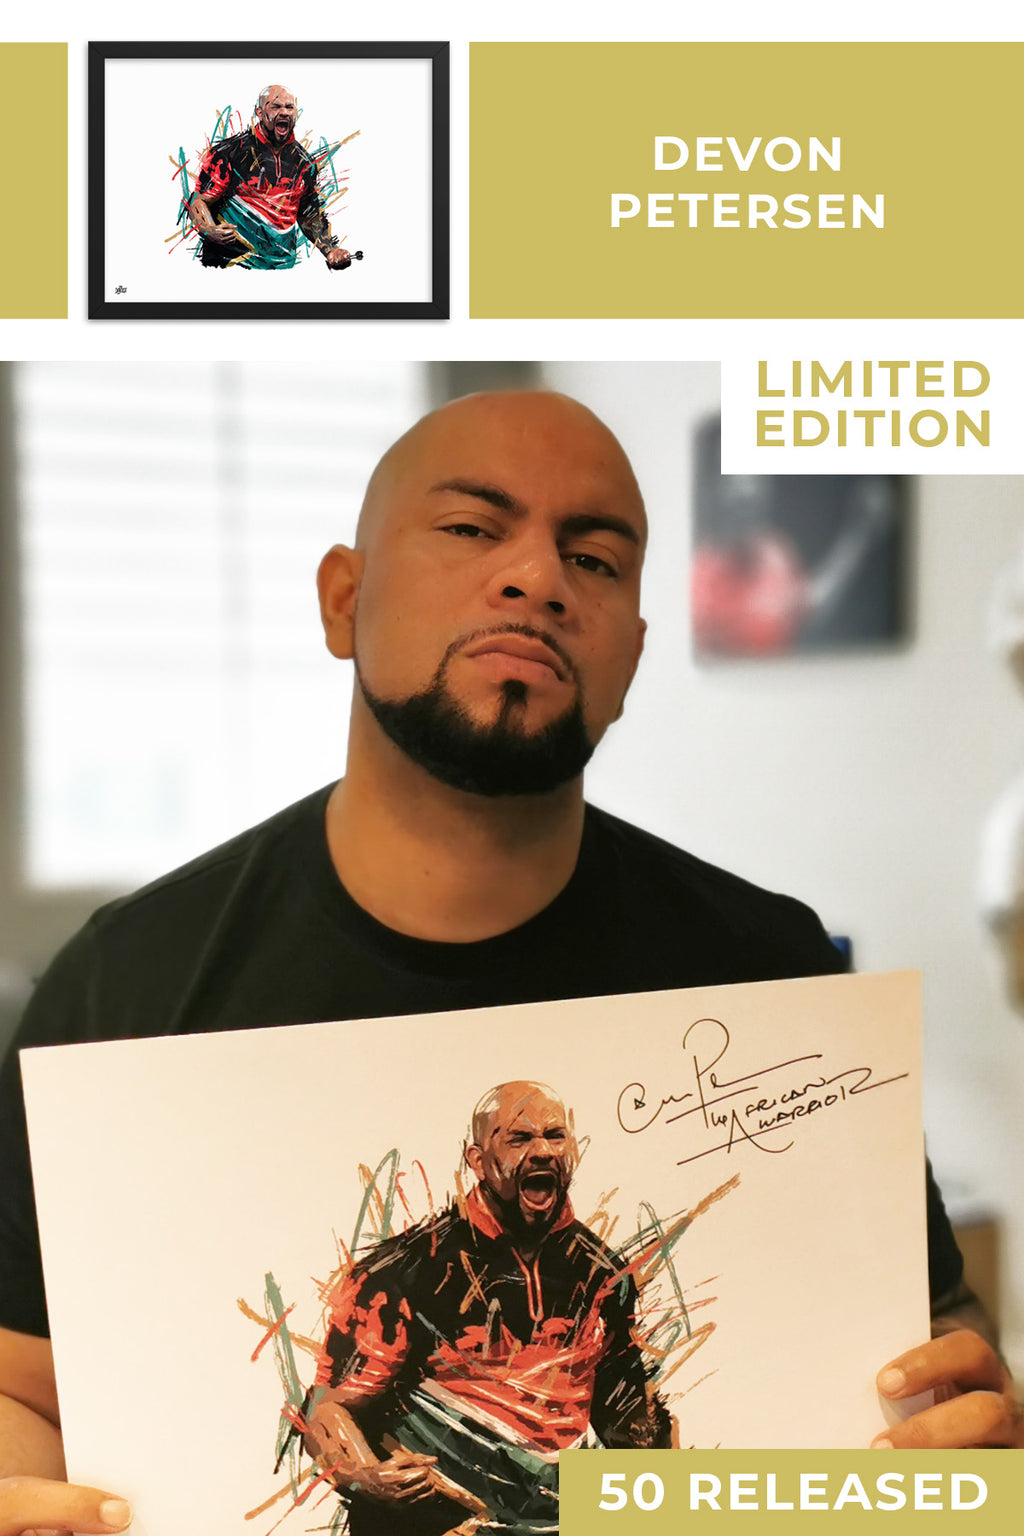 Devon Petersen Limited Edition Signed Art Print - The Dartist